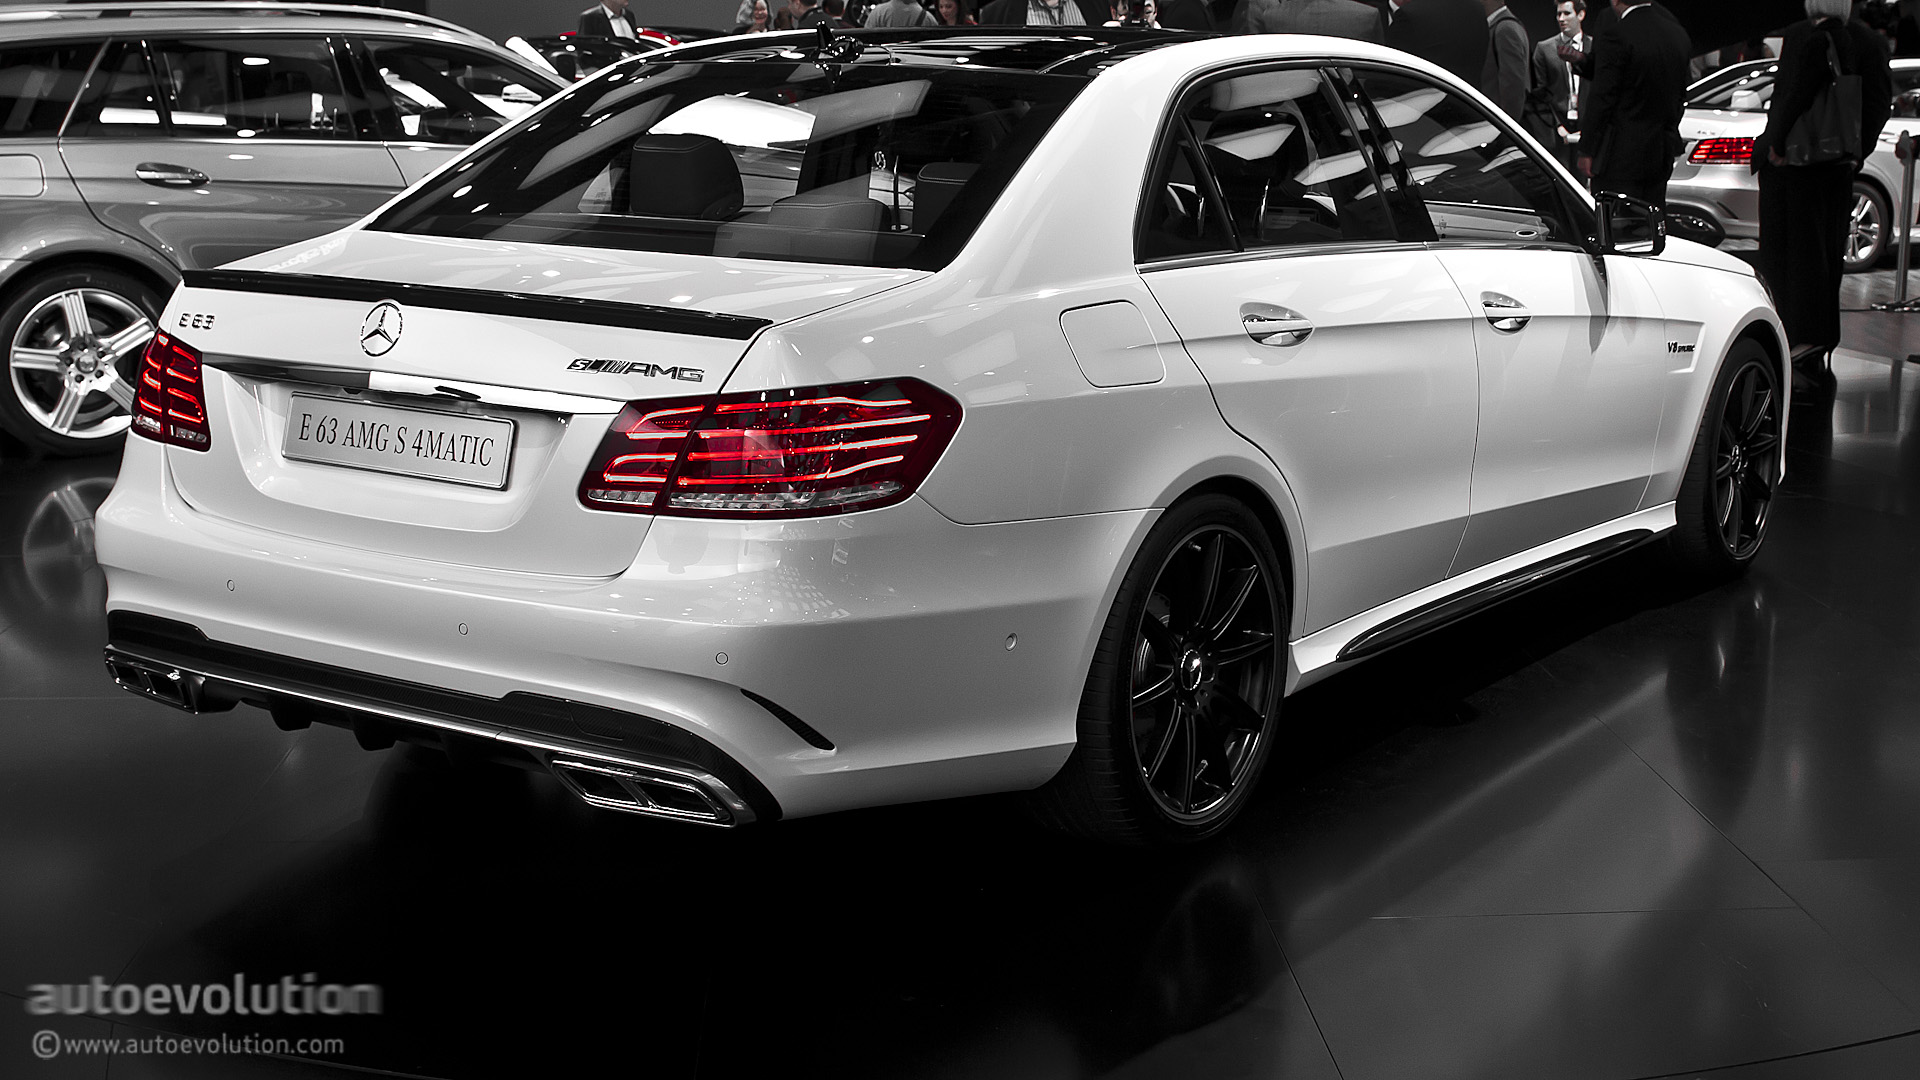 2013 mercedes benz e63 amg s 4matic